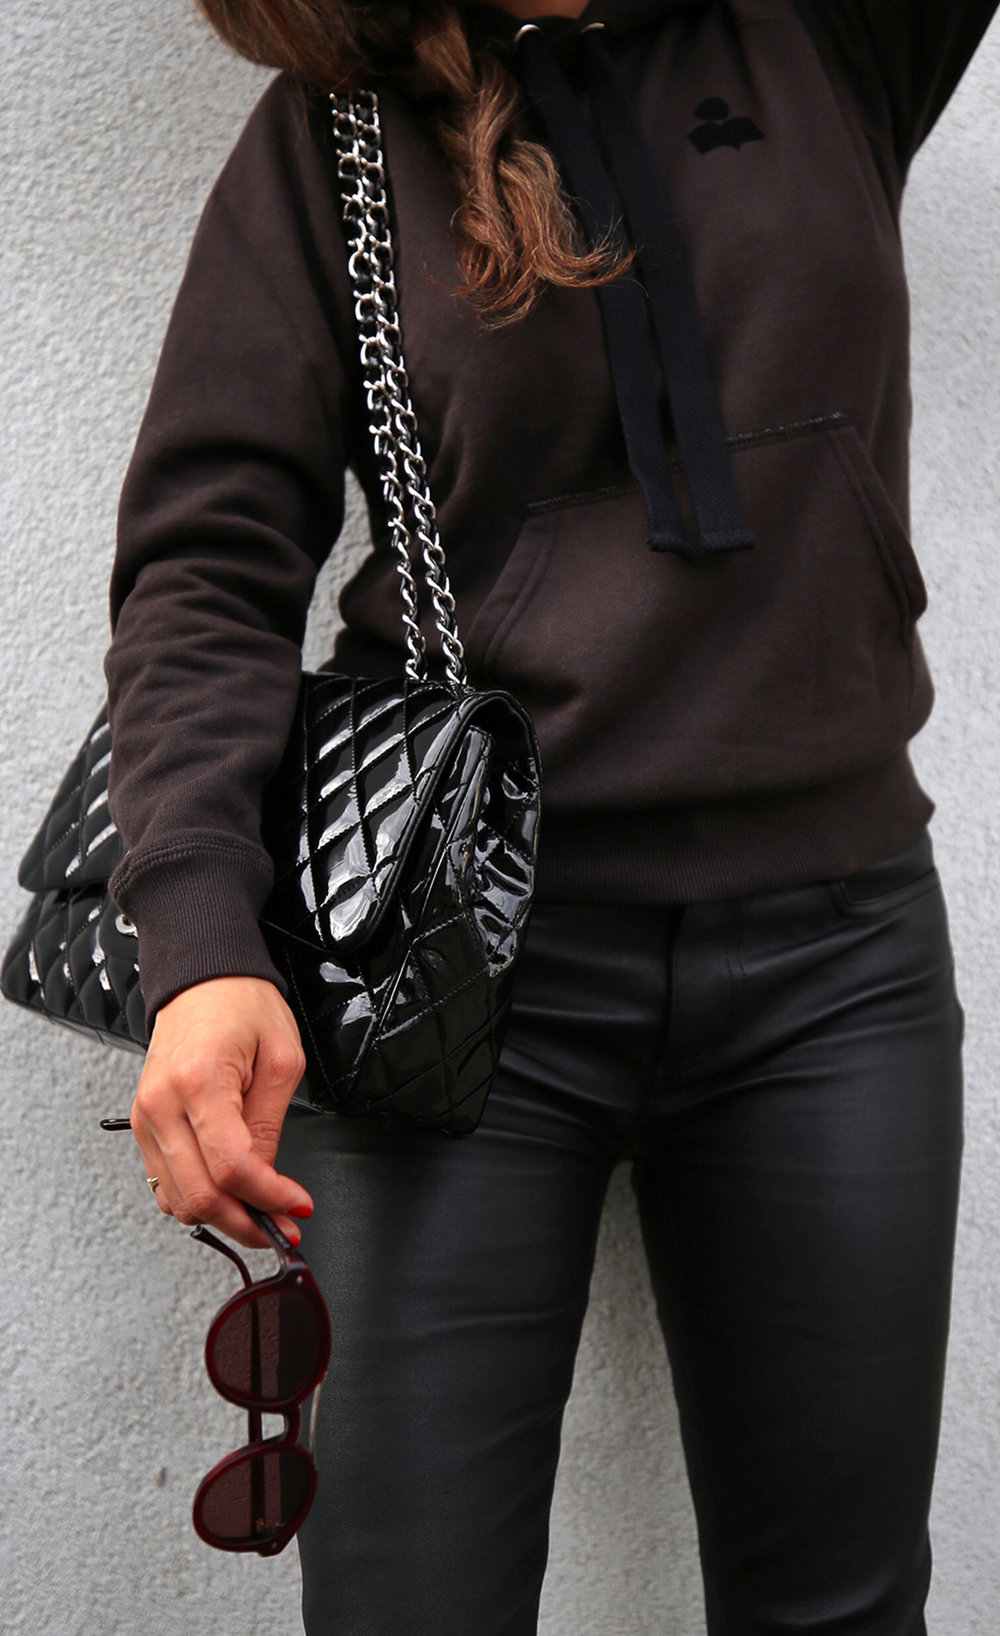 Isabel Marant Malibu Hoodie, Mackage leather jeans pants, Givenchy floral studded Elegant Line boots, Chanel patent leather flap bag - street style - woahstyle.com, nathalie martin 10.jpg